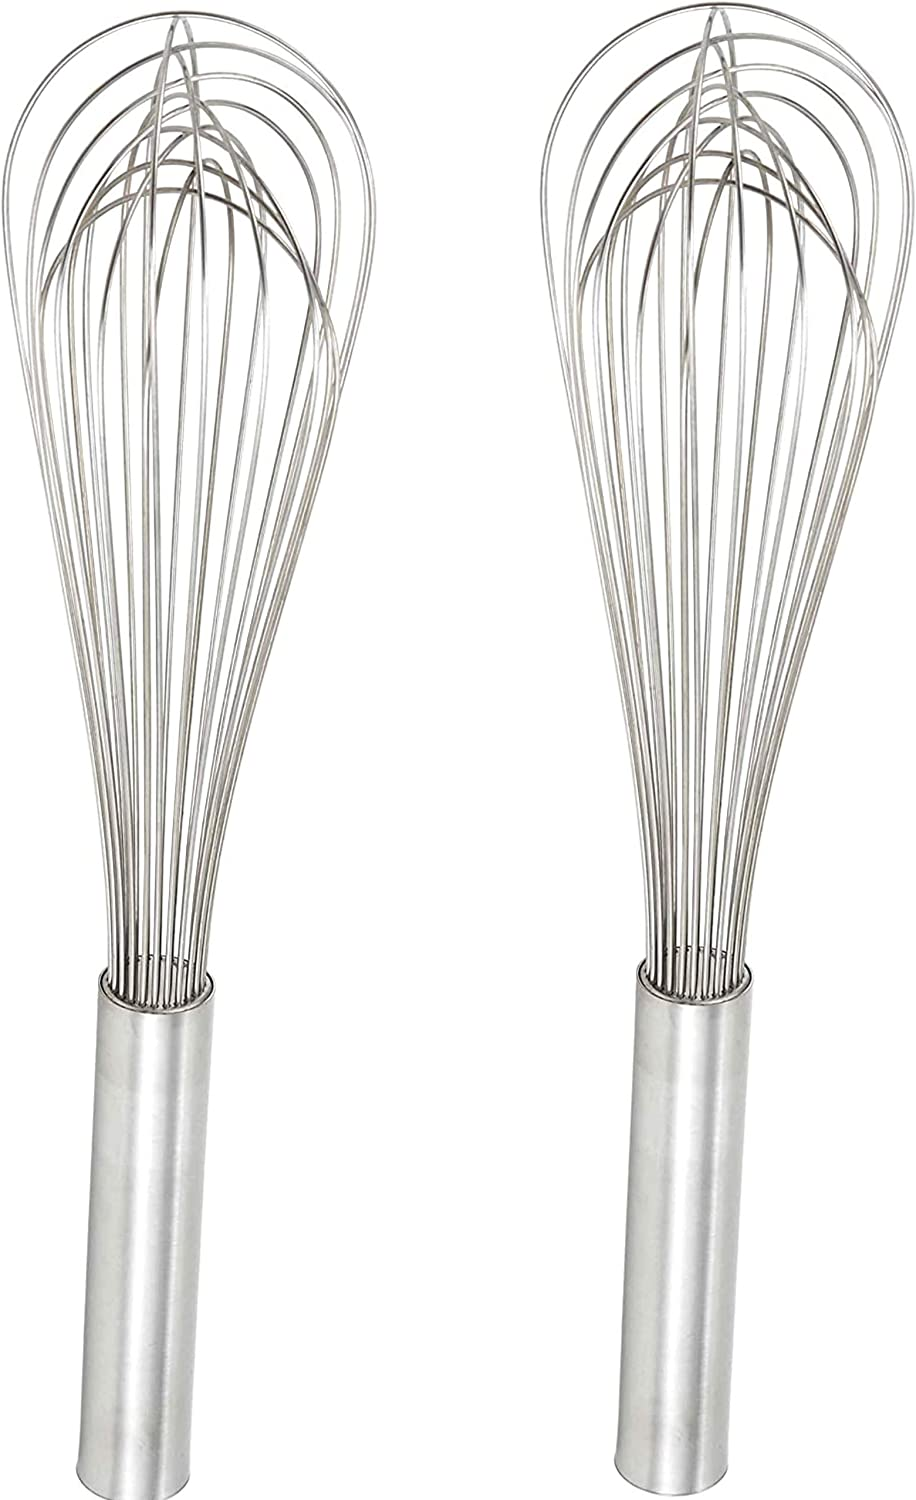 Stainless Steel 10-Inch Winco French Whip